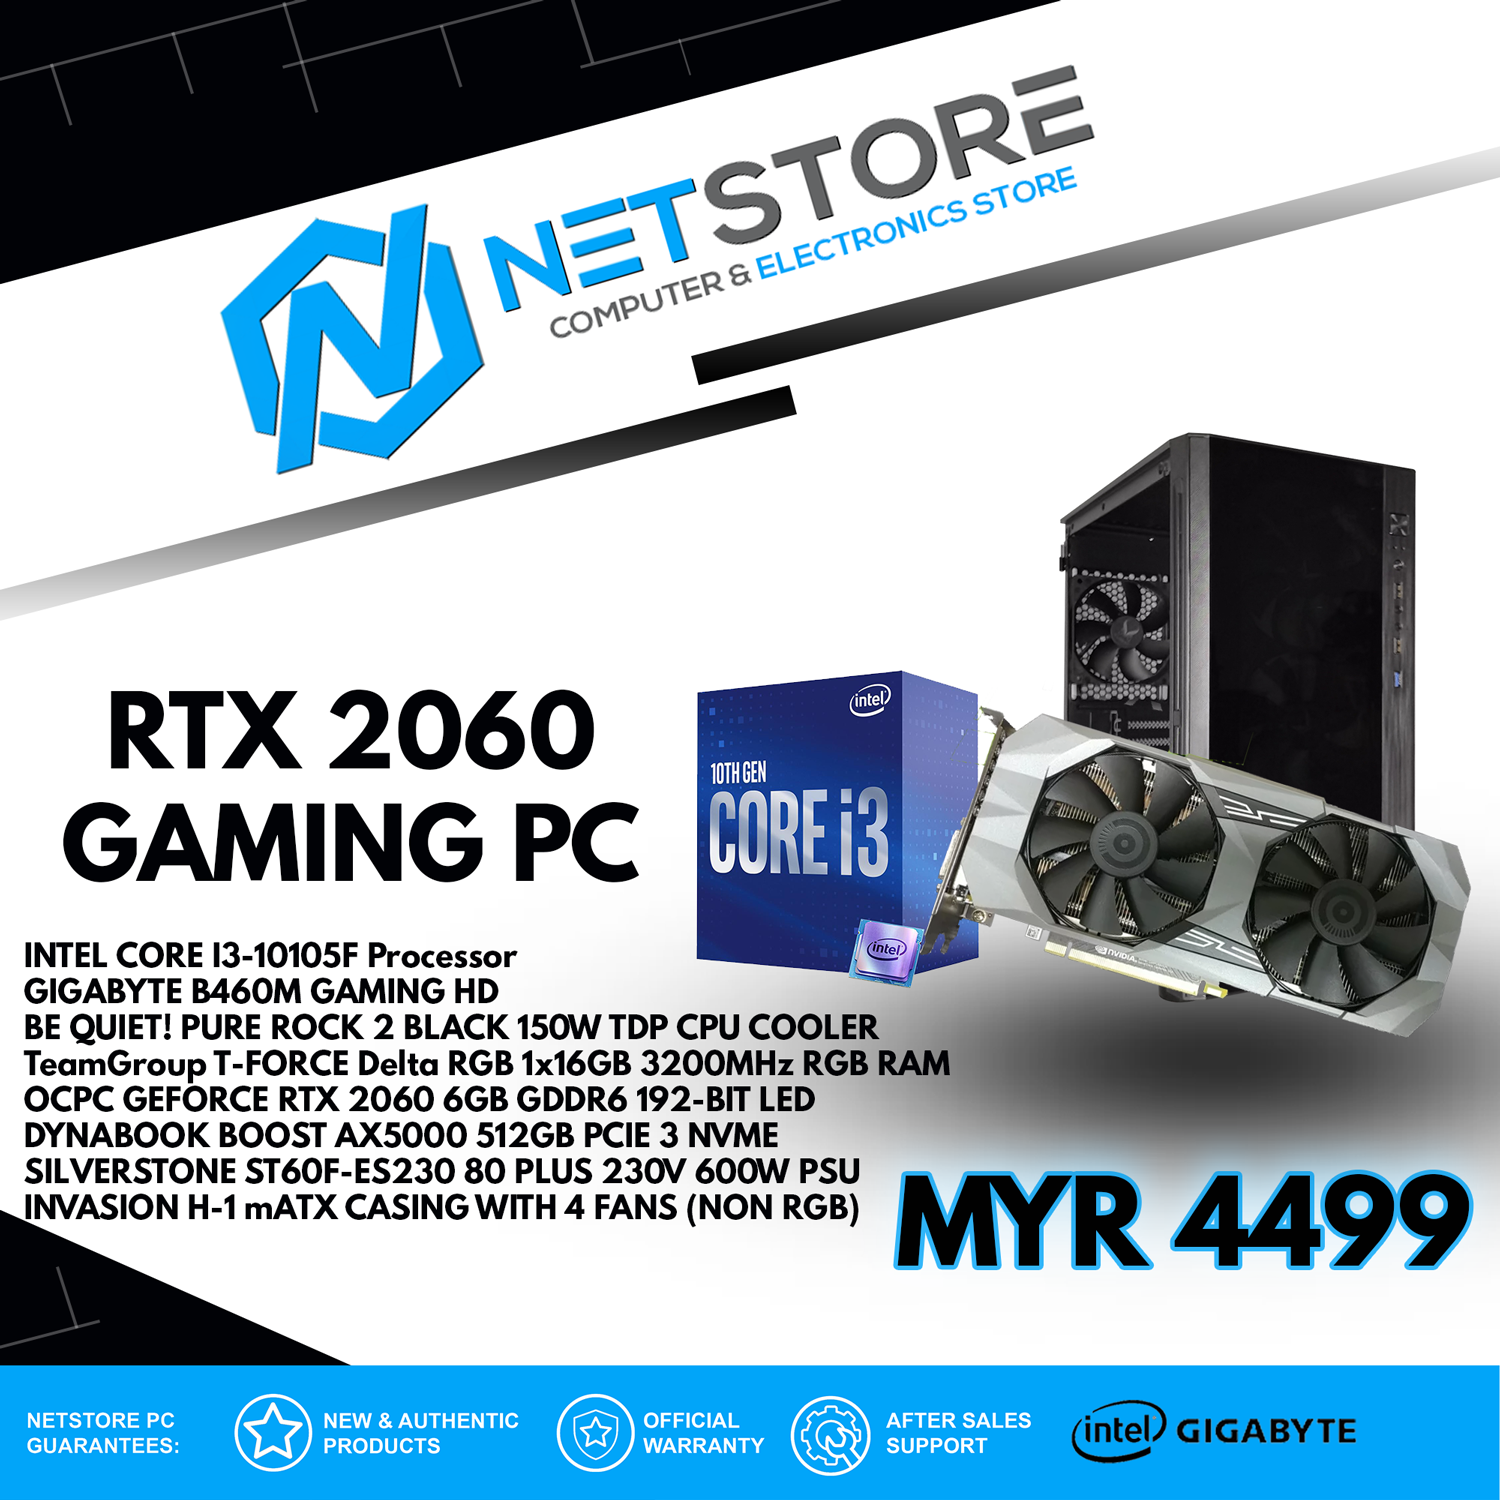 NETSTORE RTX 2060 GAMING PC